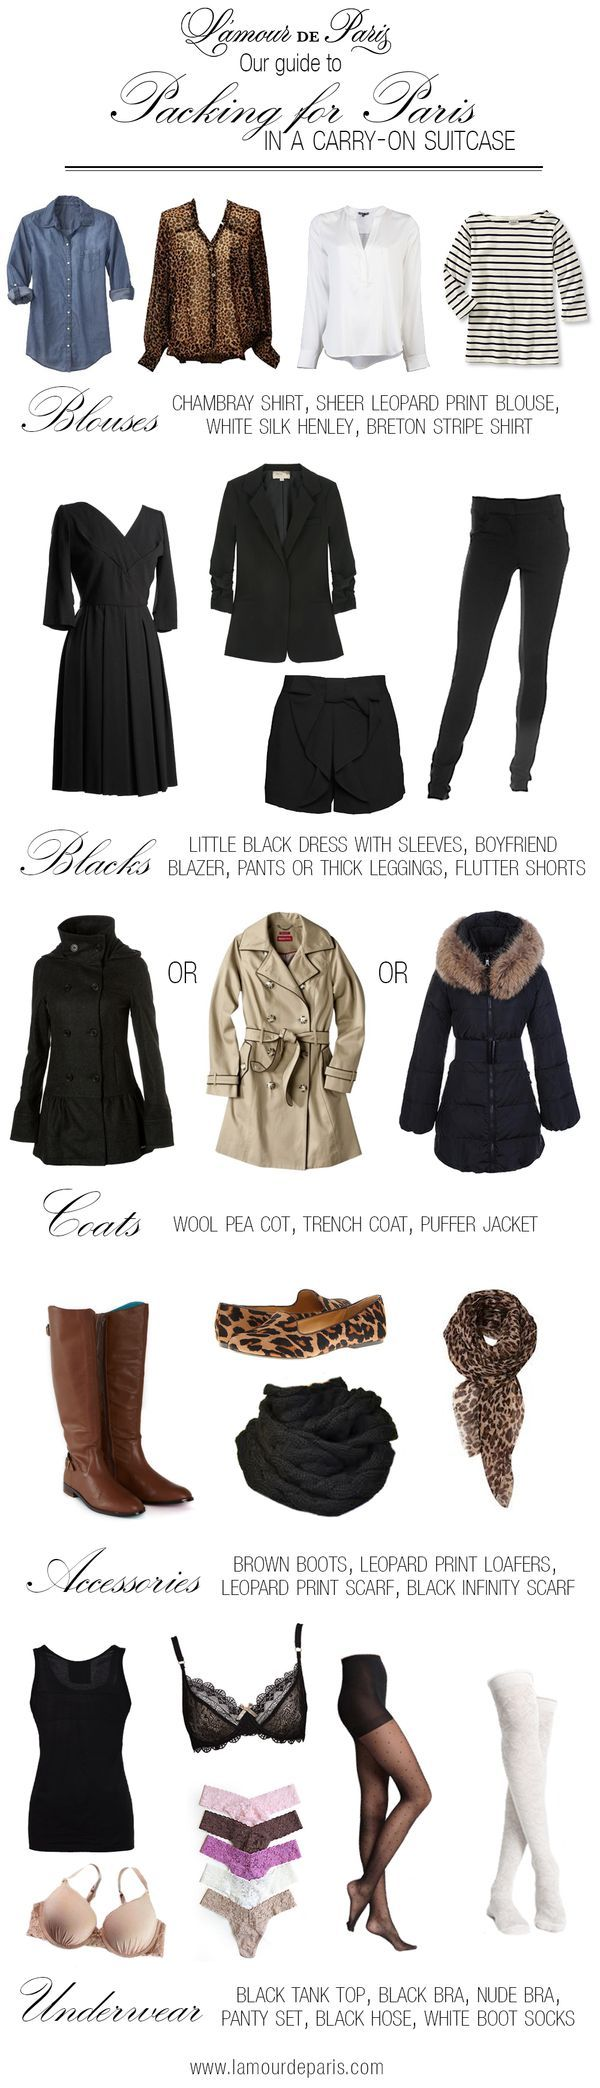 Paris, France or Paris, Missouri, this is a great guide for several outfits with few items.